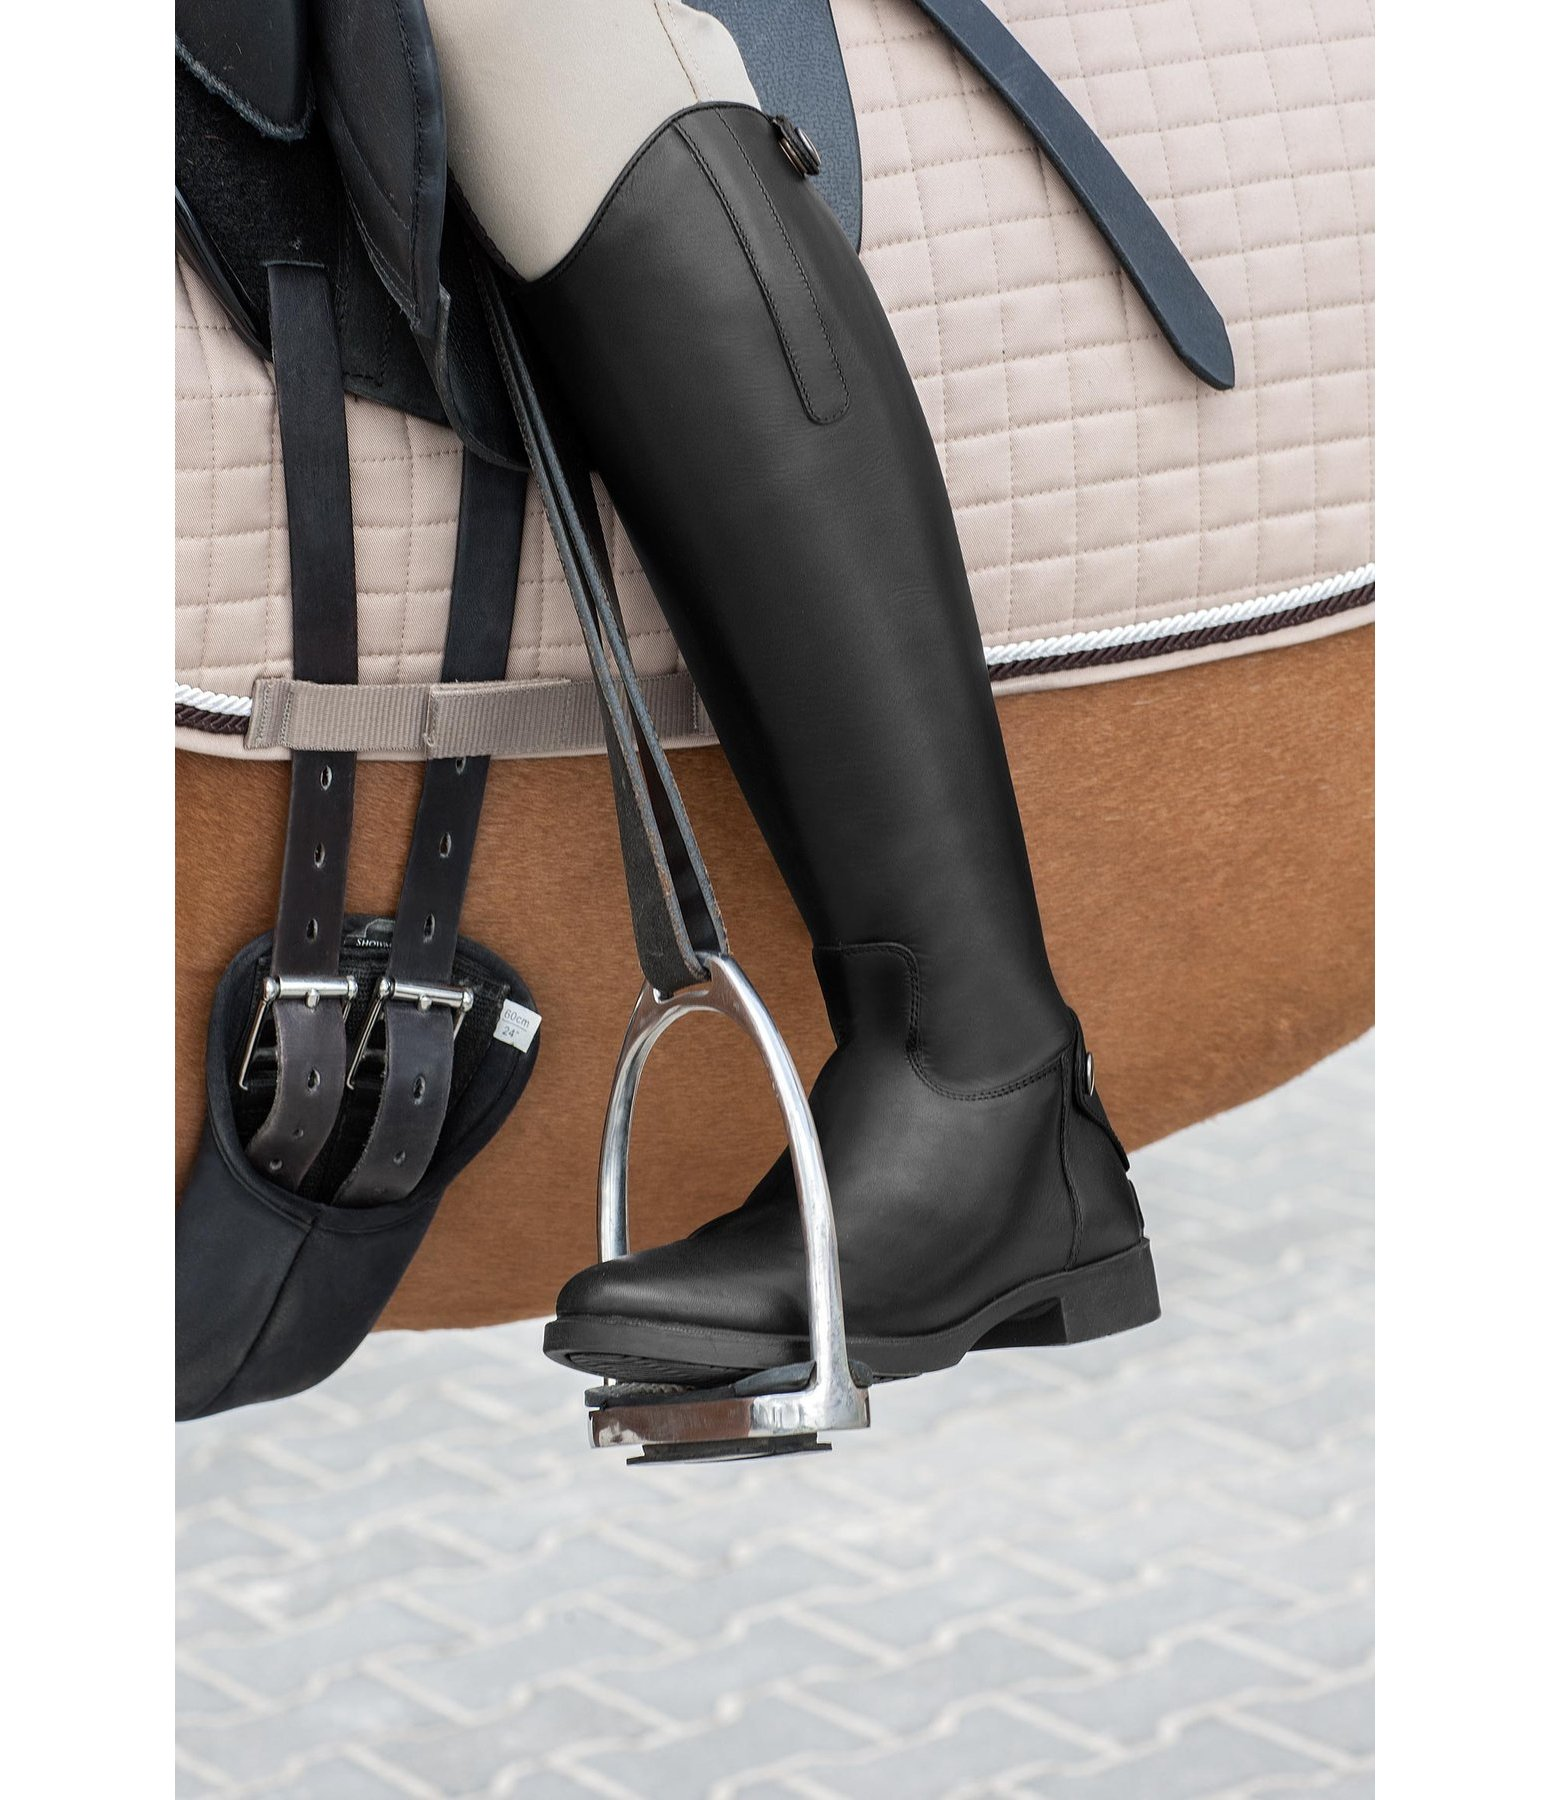 Steeds riding boots